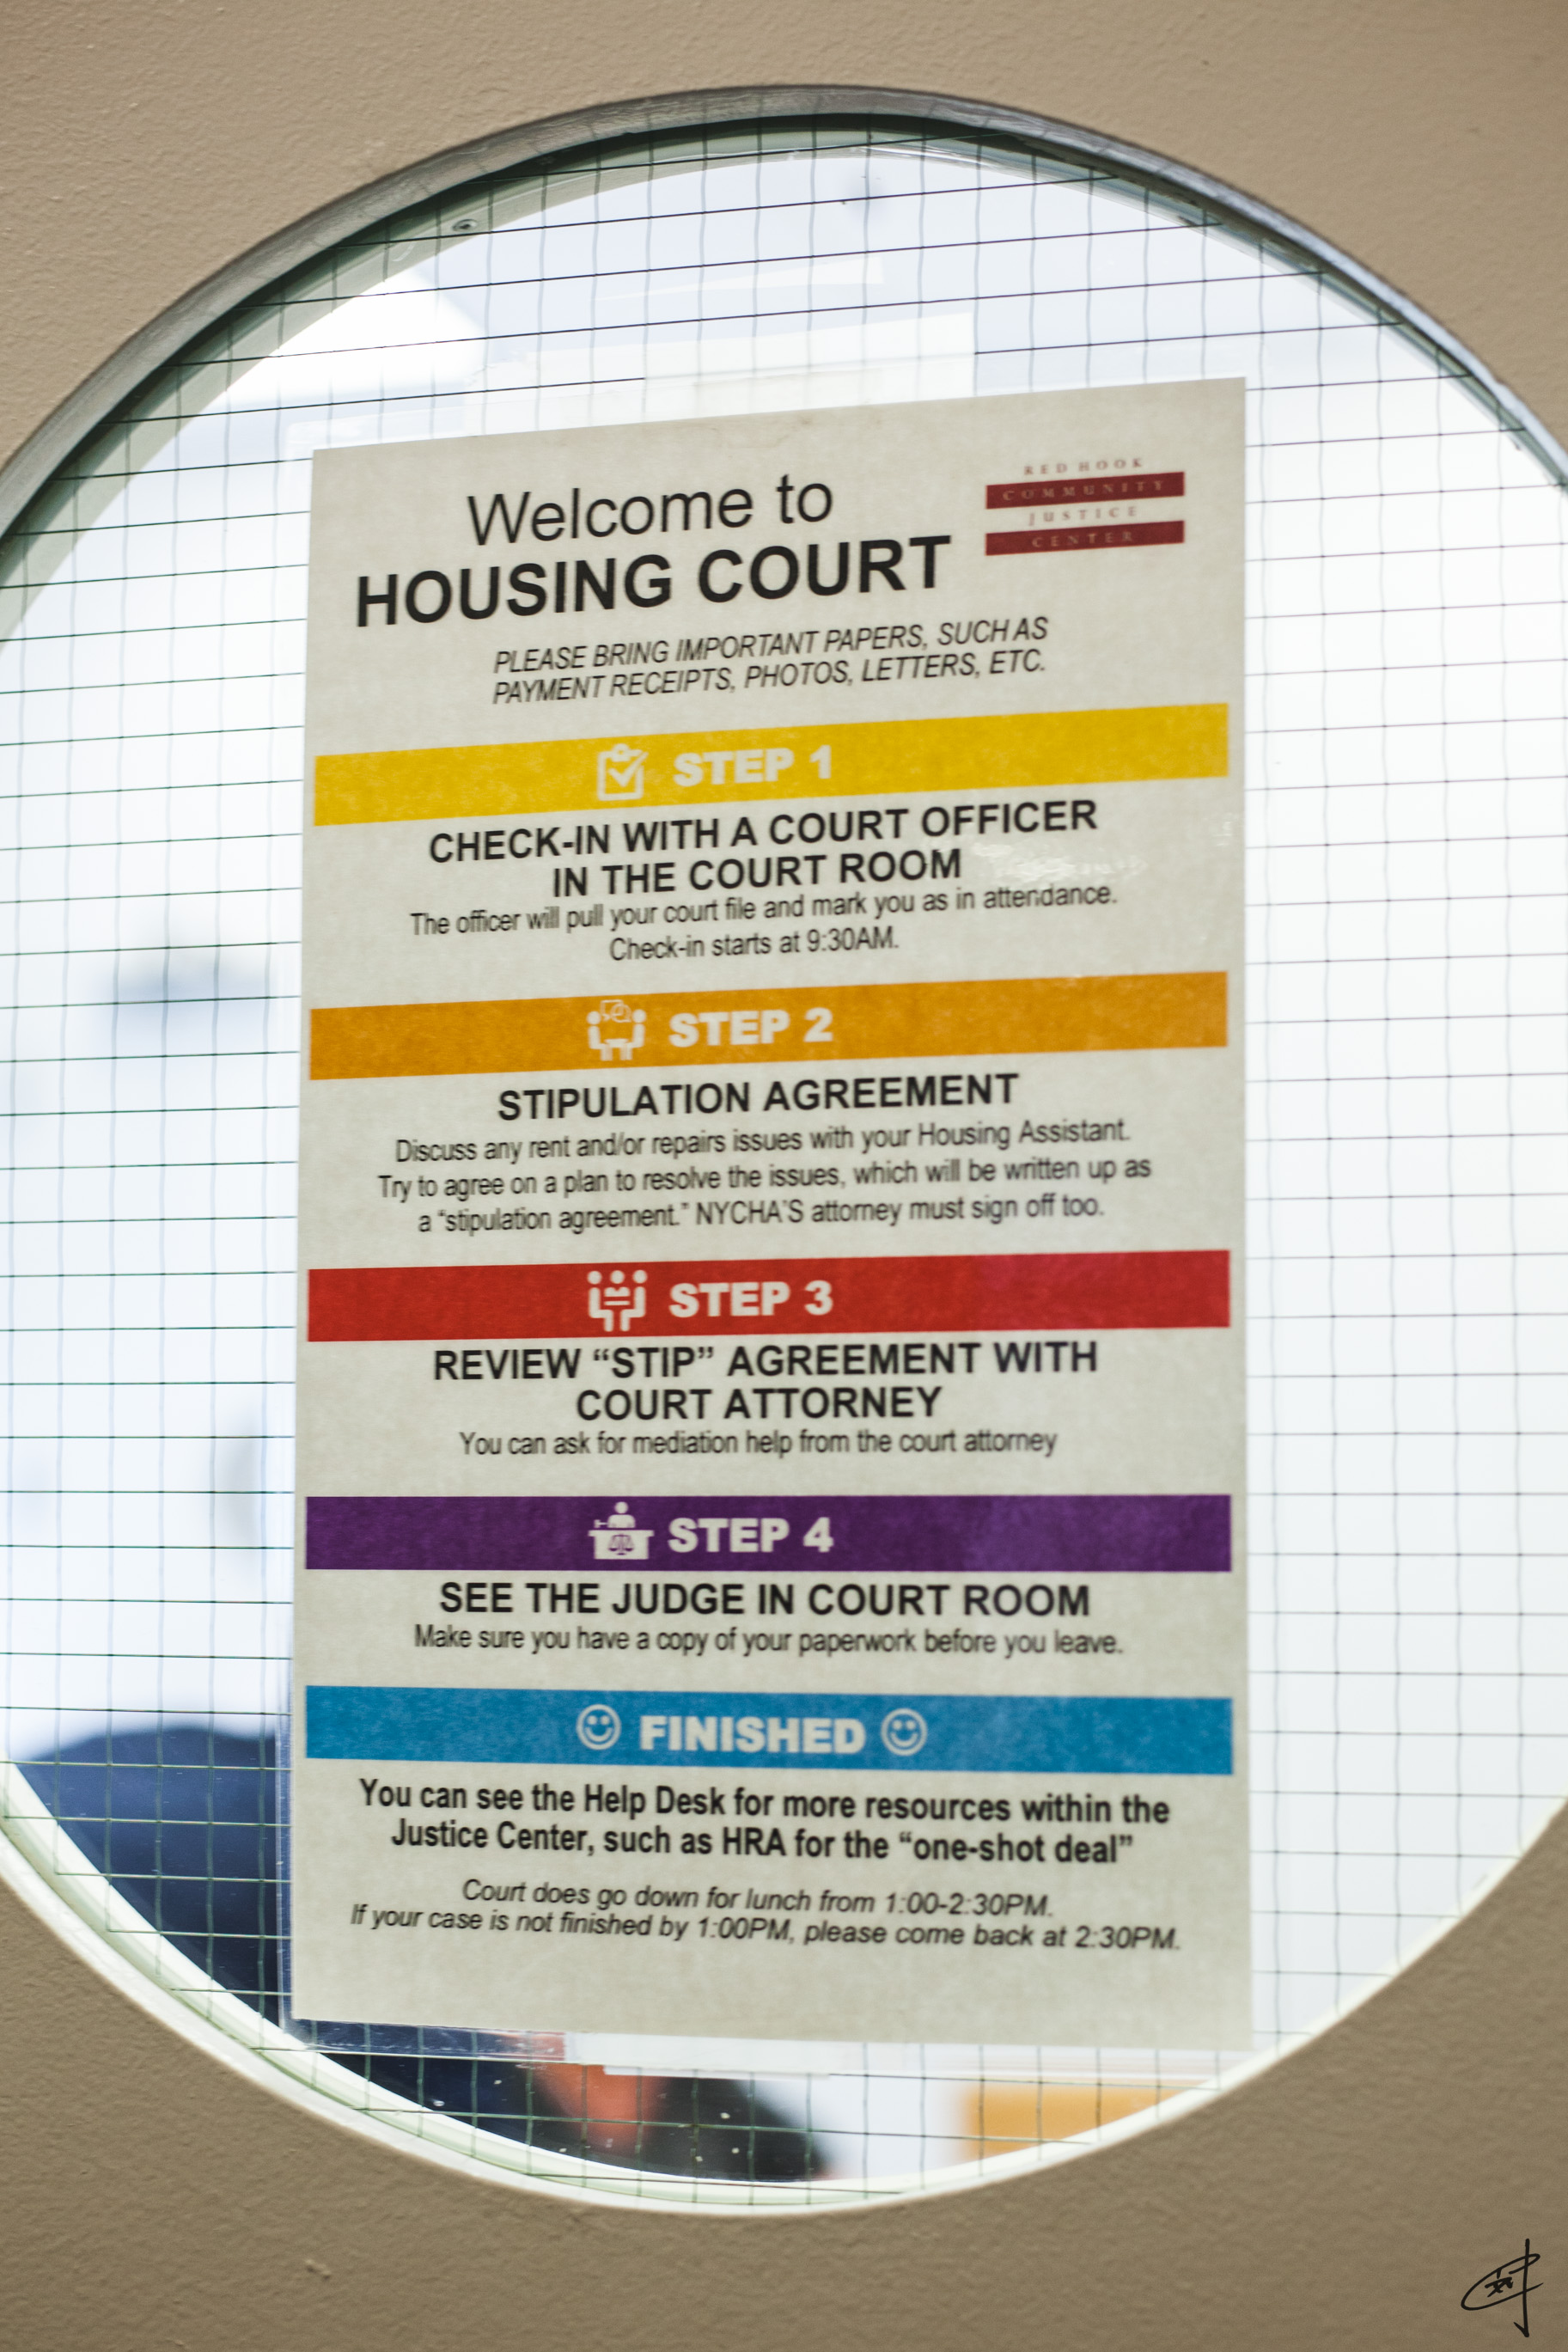 The five steps of housing court at RHCJC.